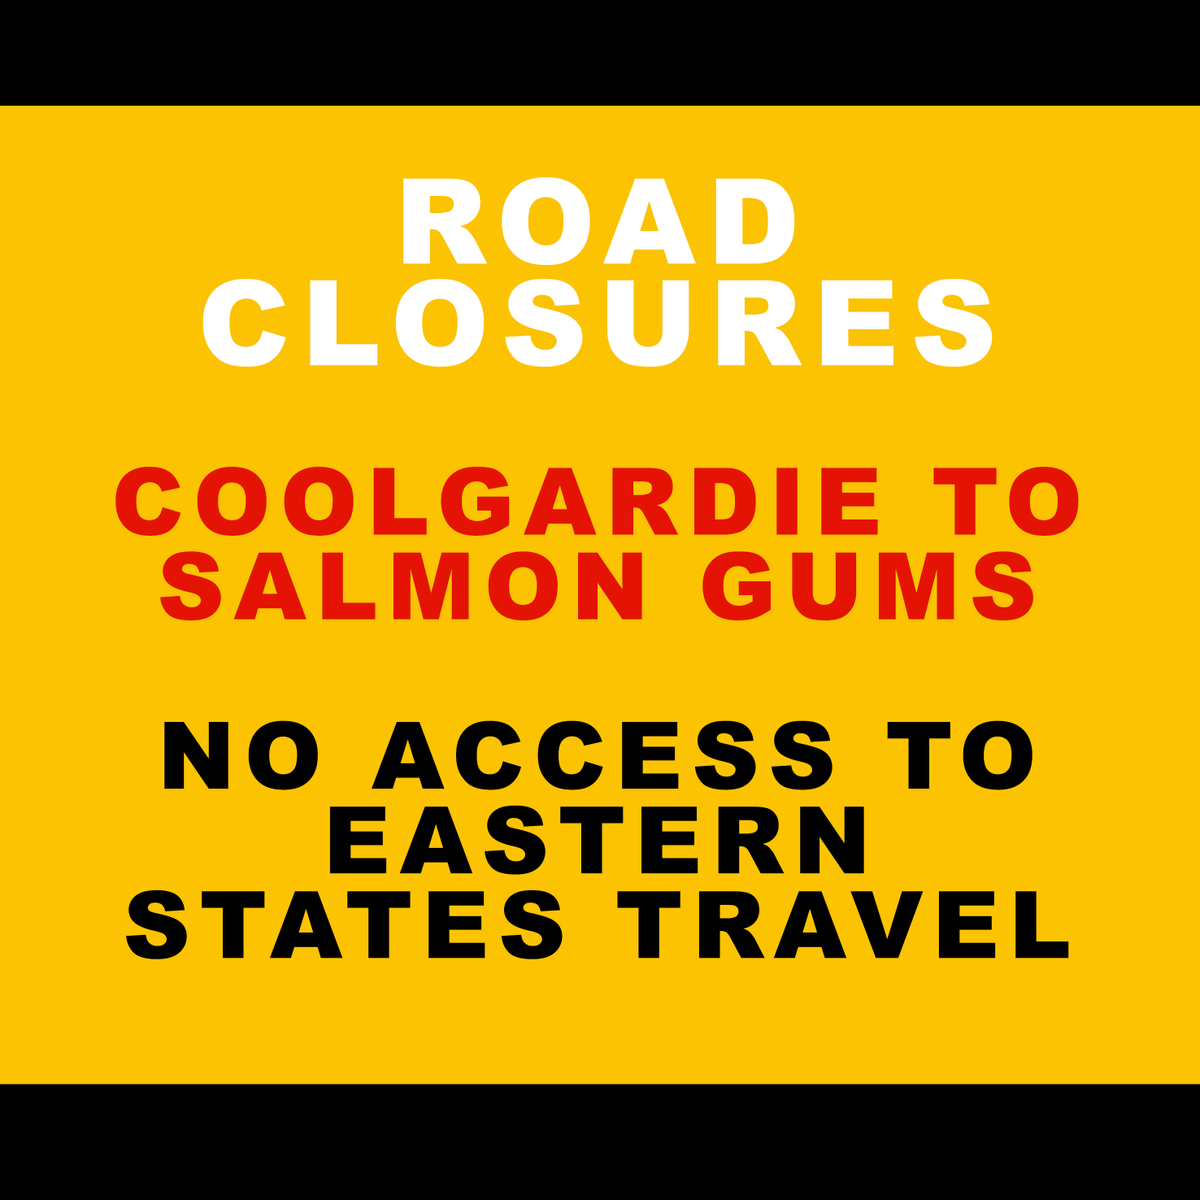 The Coolgardie-Esperance Hwy from Coolgardie - Salmon Gums is closed due to bushfires. Currently no access for traffic hoping to travel through to SA. For a full list of road closures and the latest updates and info visit  https://t.co/W621FB0add. https://t.co/35alVCLp8N